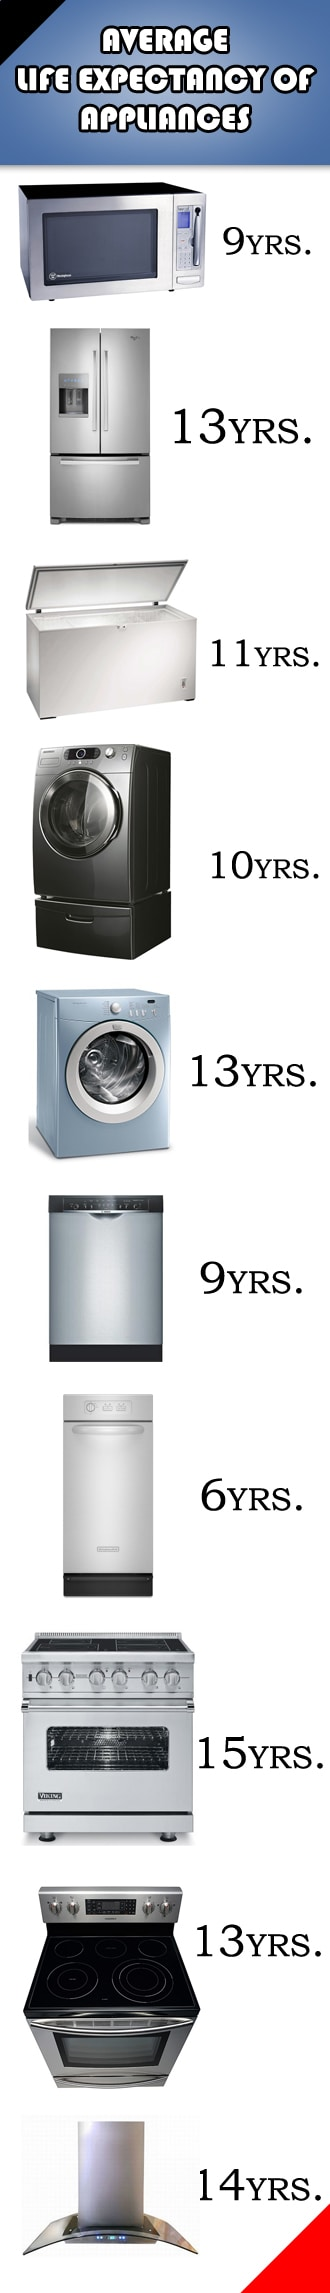 Life Expectancy of Appliances